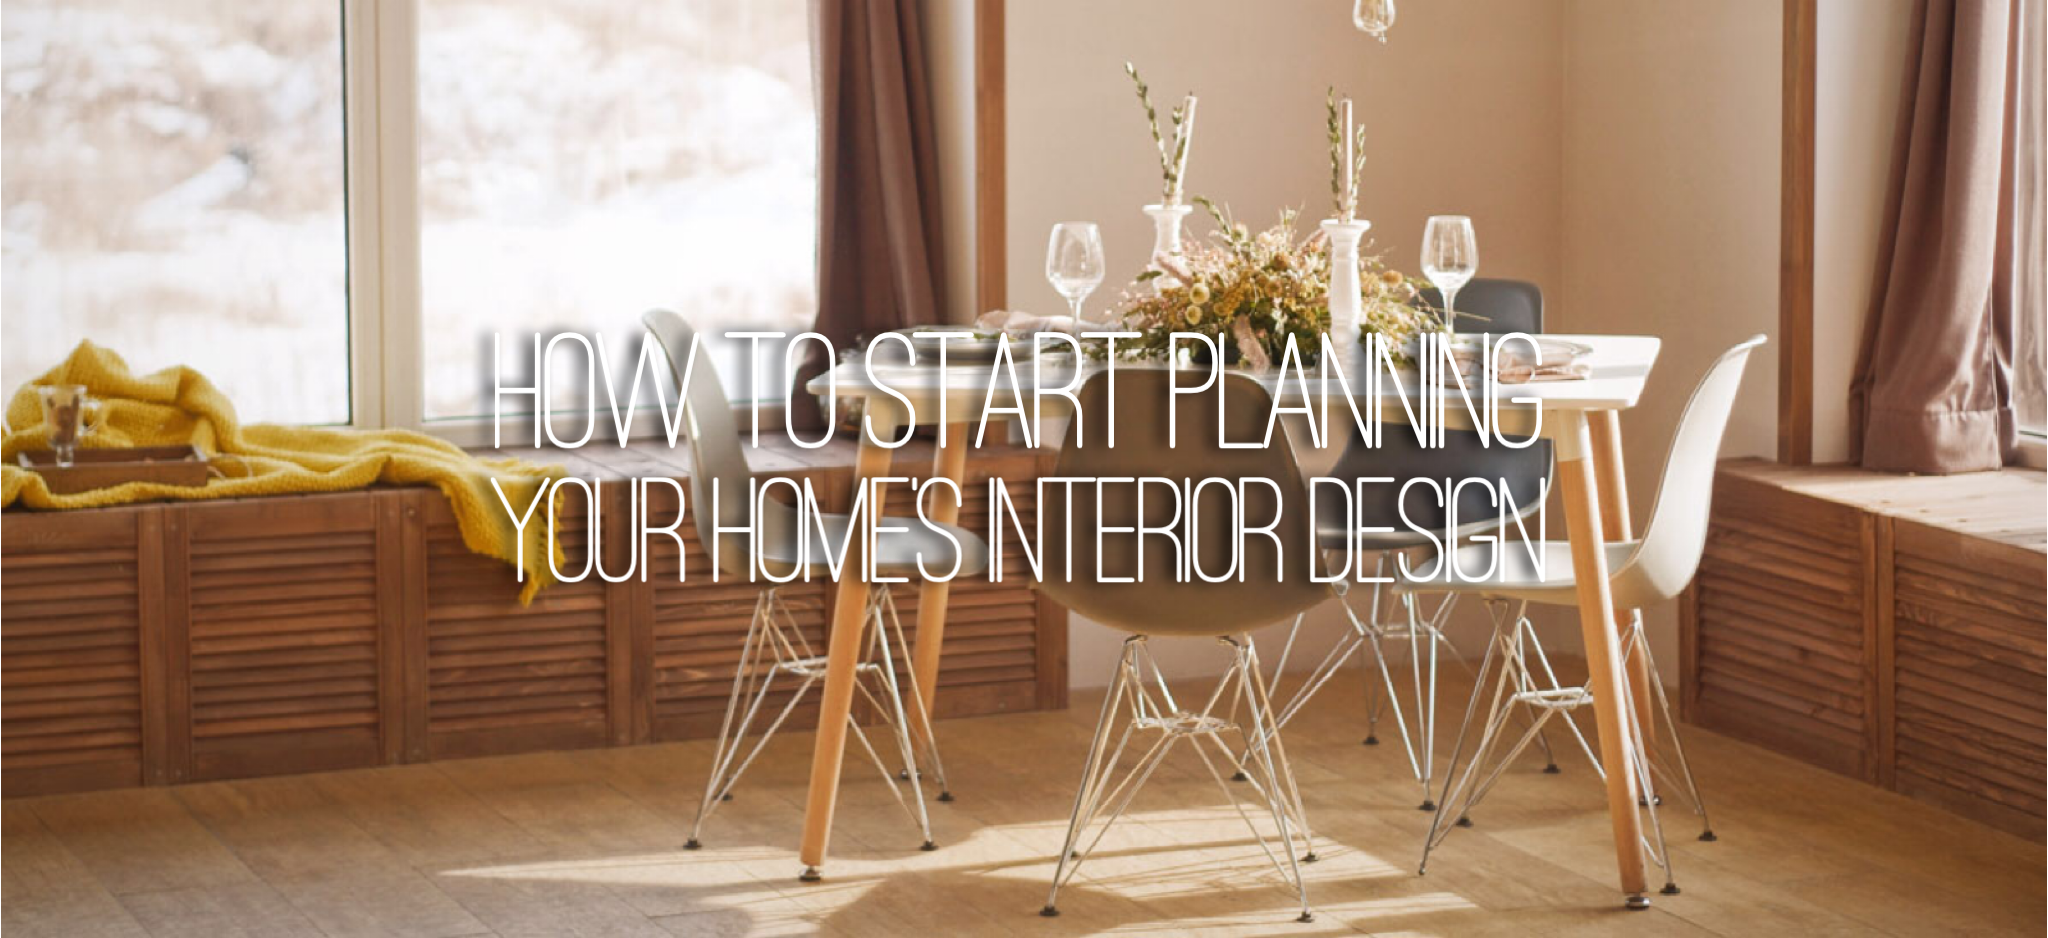 How to start planning your homes interior design